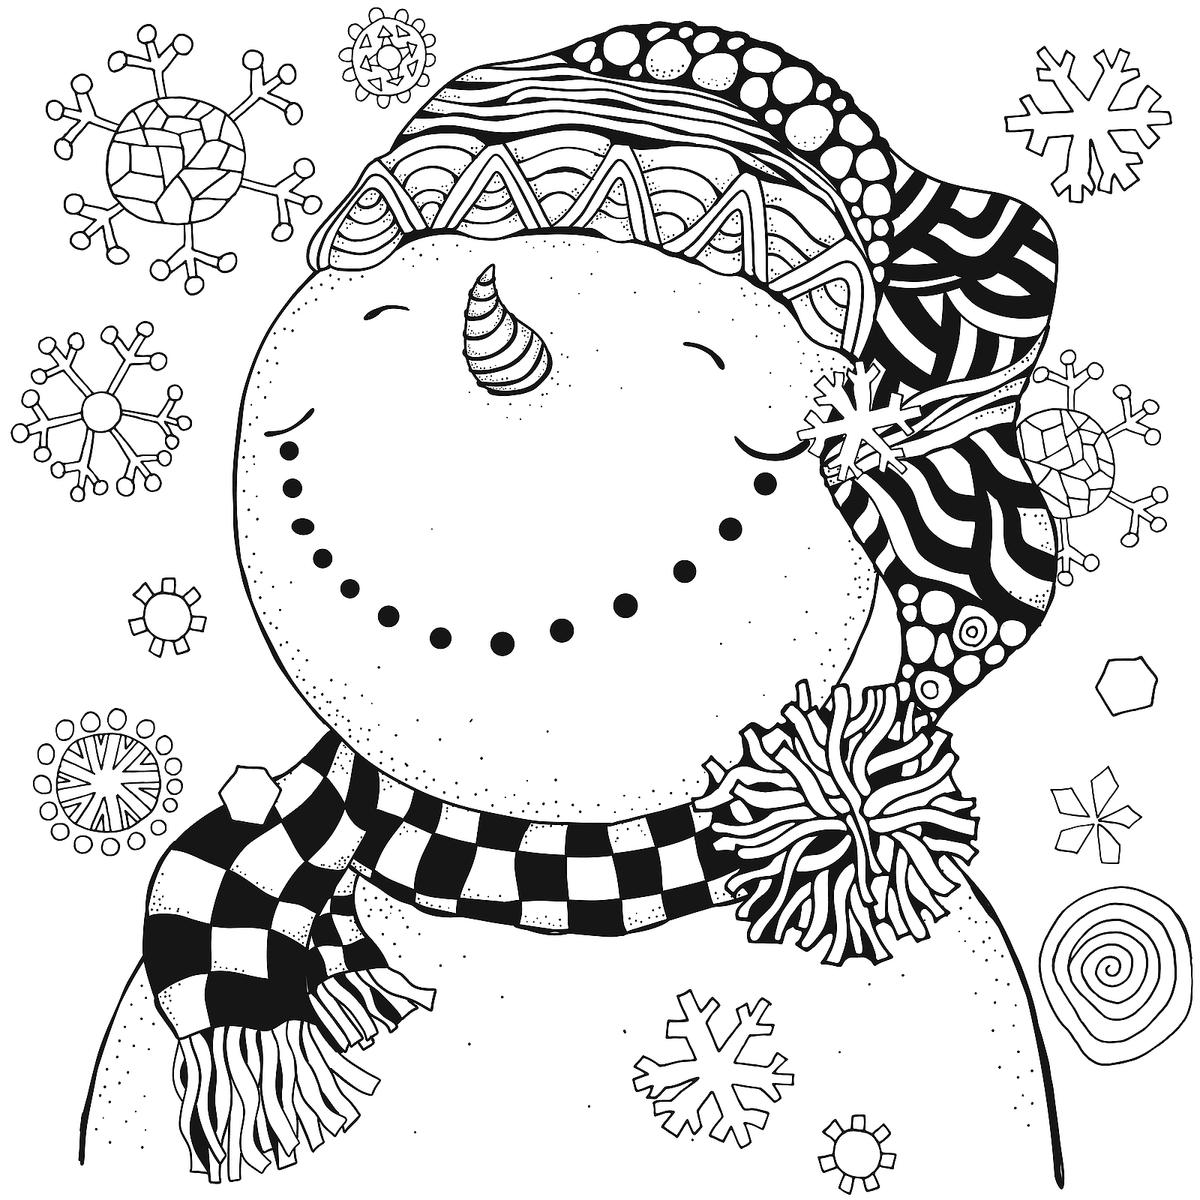 Snowman Coloring Pages for Kids & Adults: 10 Printable ...